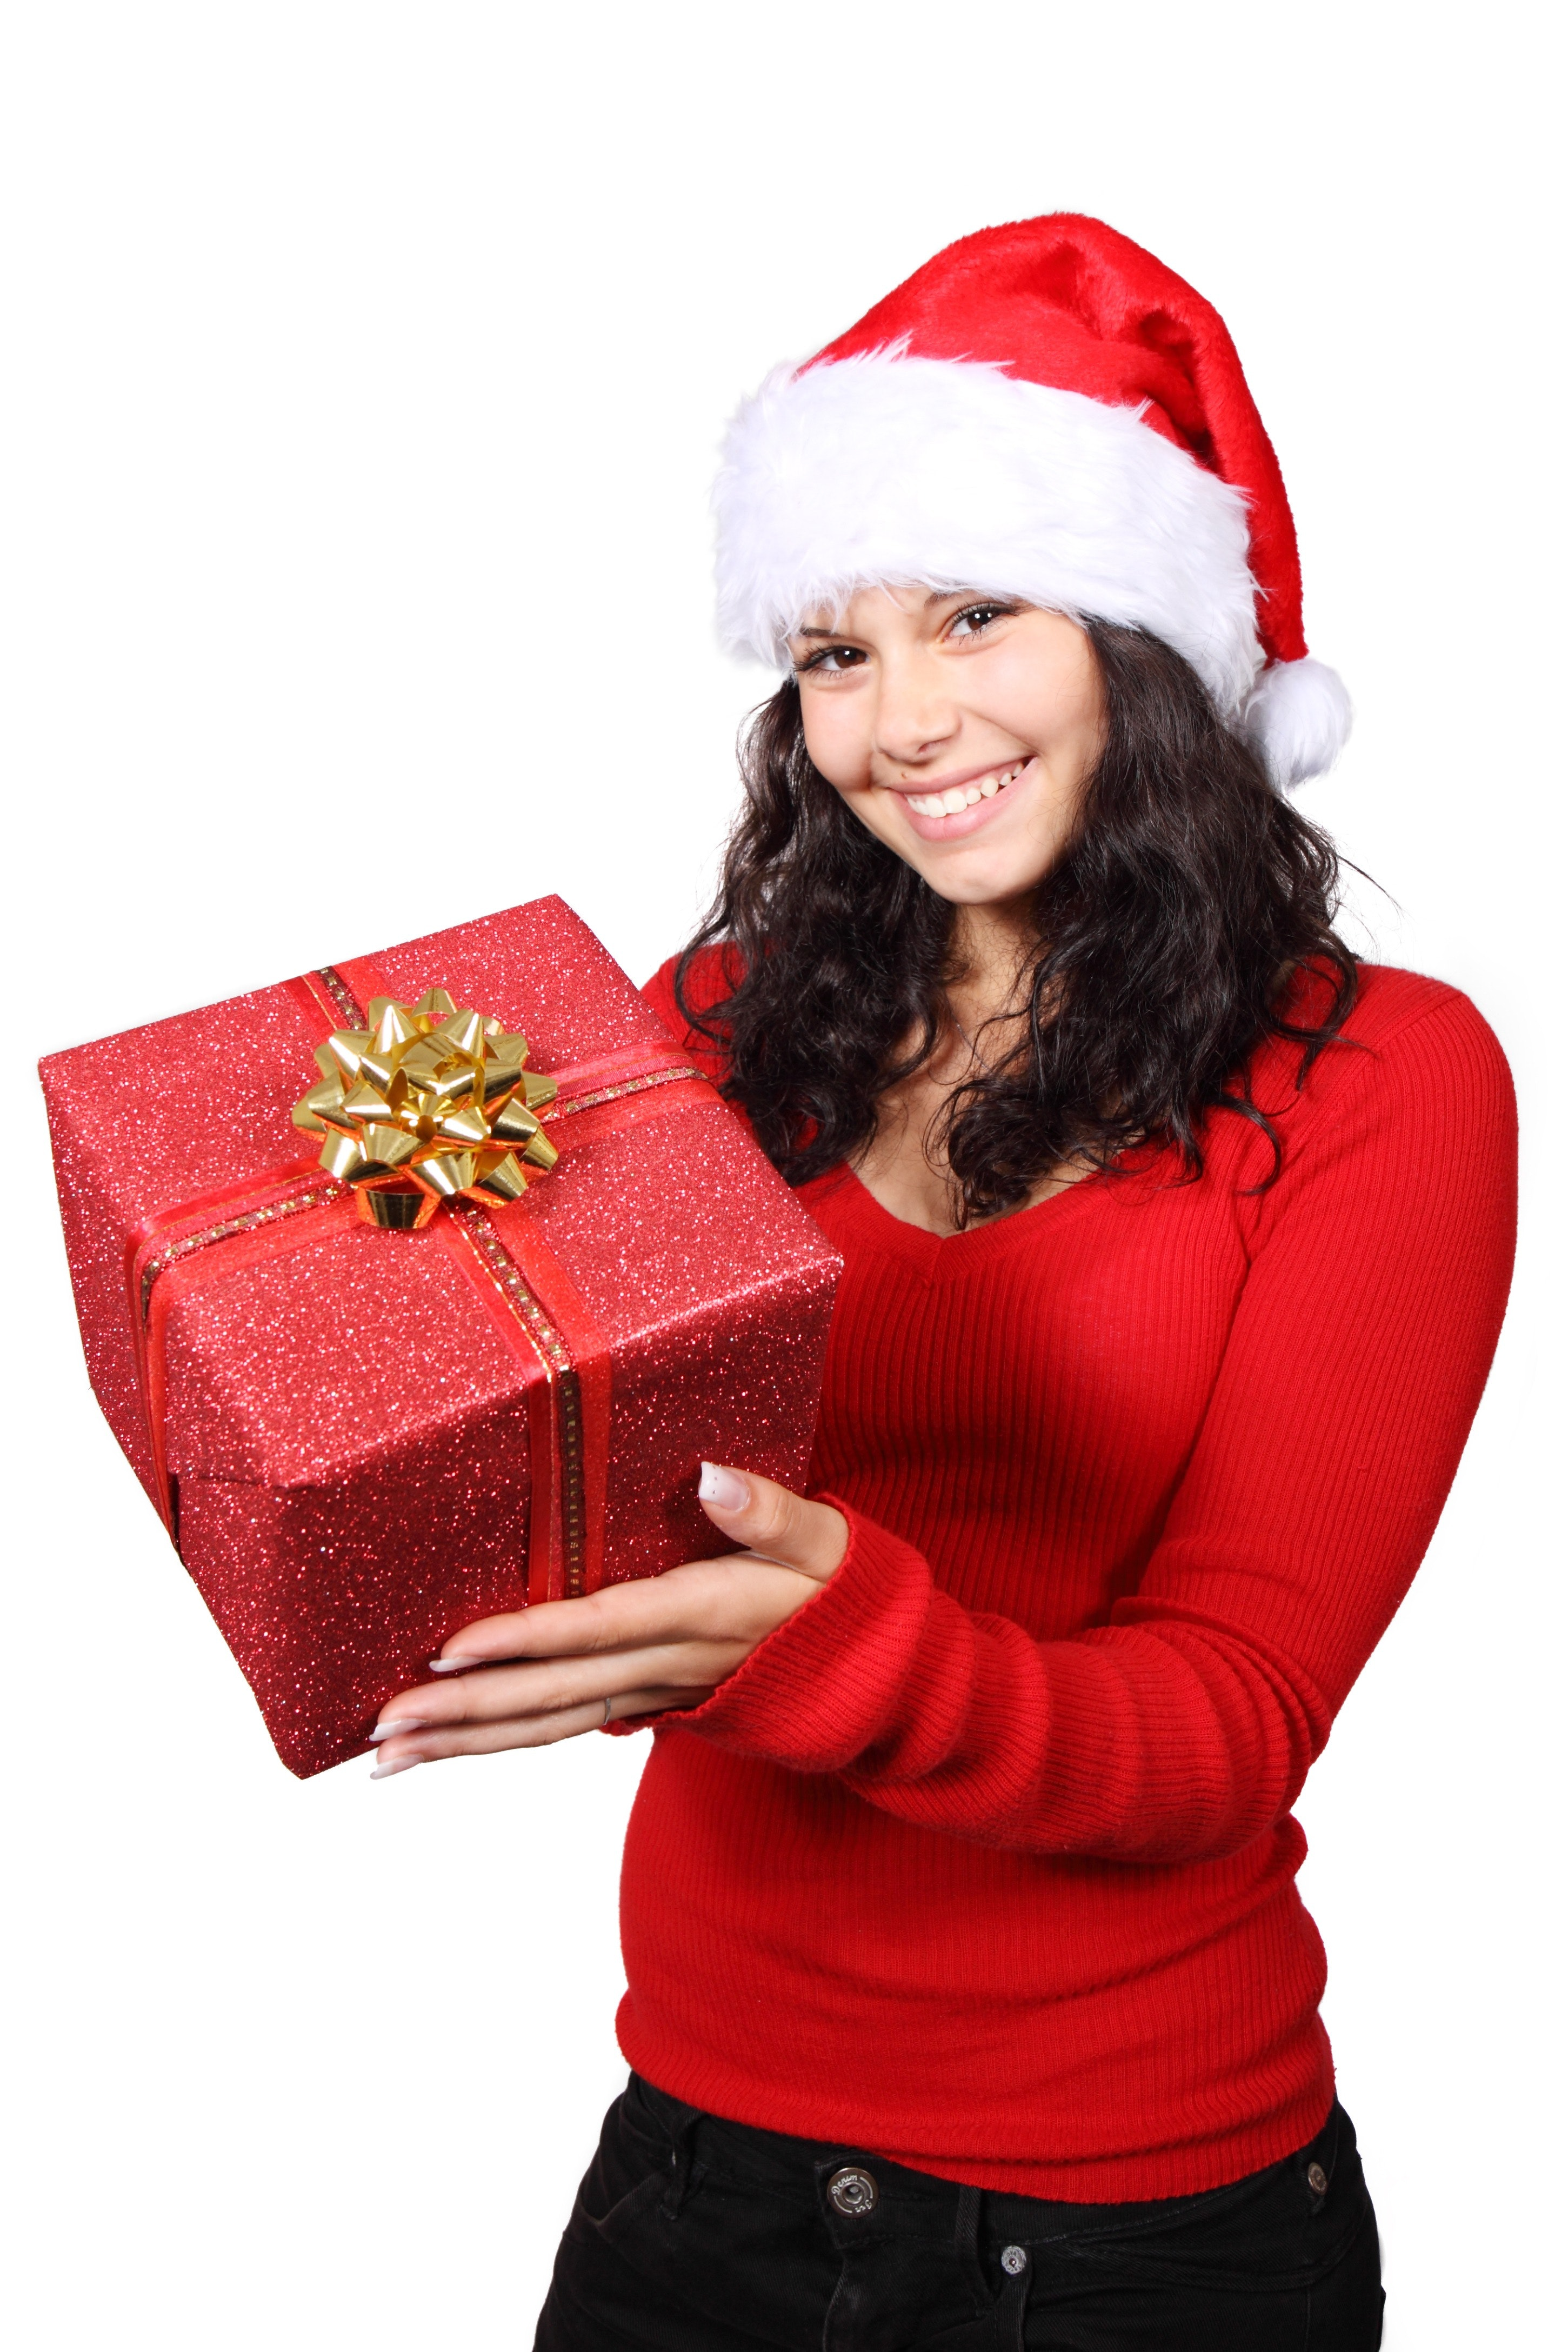 Woman in Red Long Sleeve Holding Red Gift Box, Christmas, Cute, Female, Gift, HQ Photo